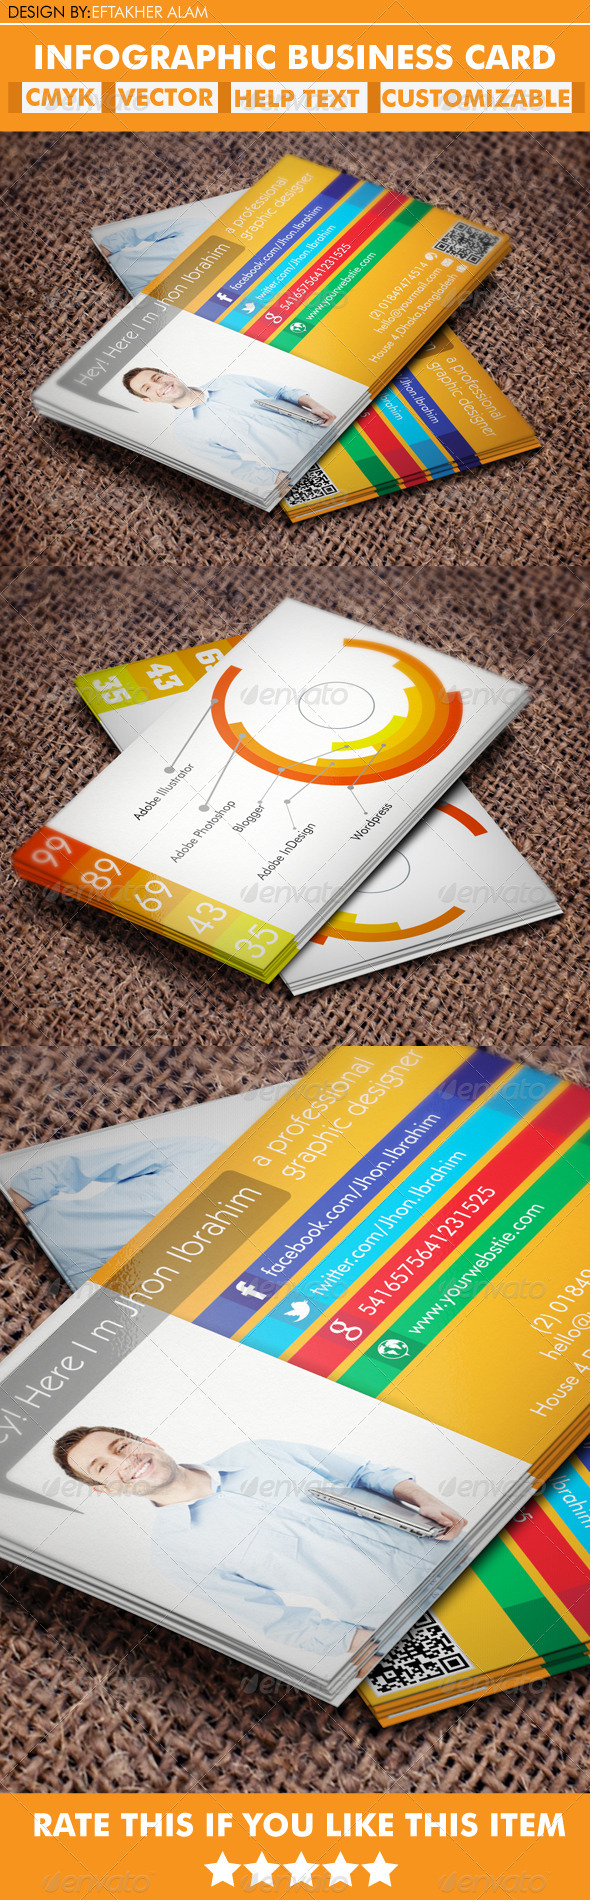 GraphicRiver Infographic Business Card 5324780